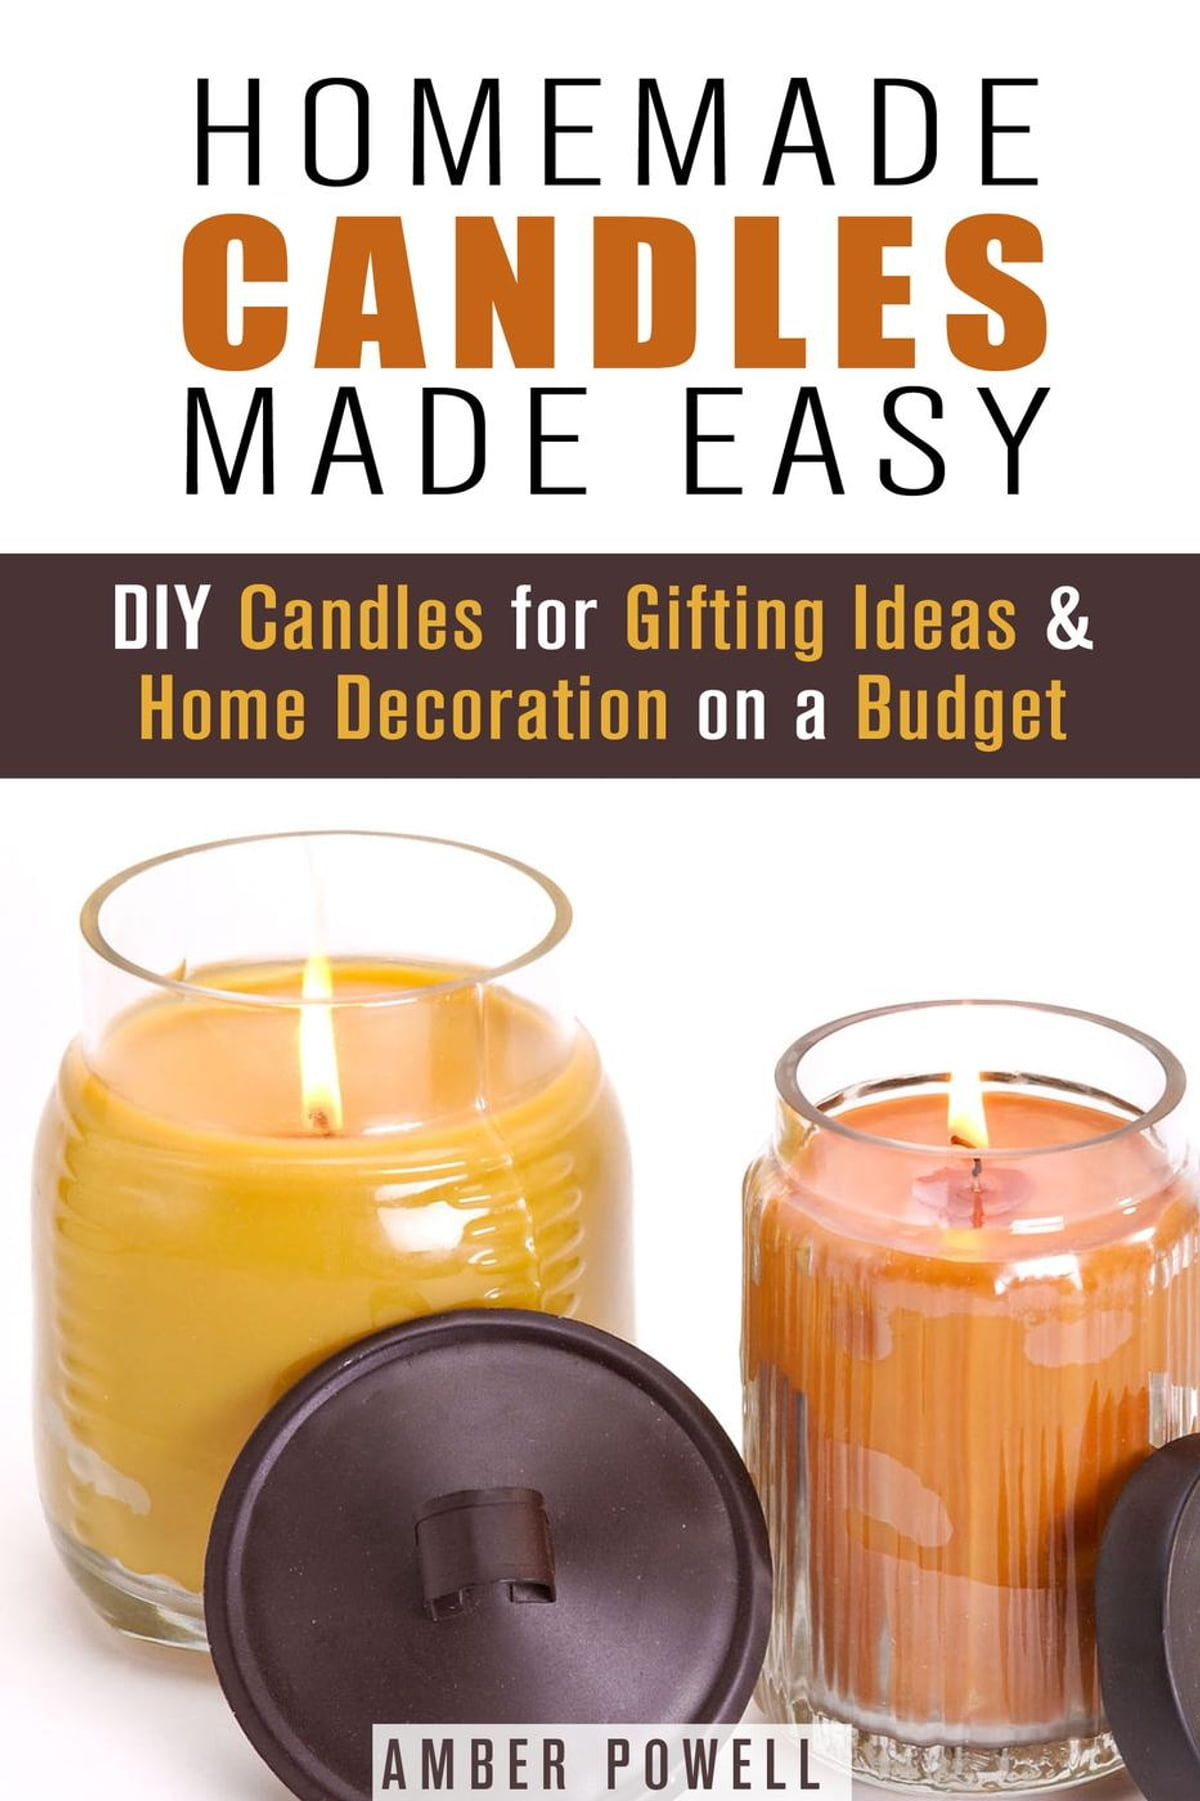 Homemade Candles Made Easy DIY For Gifting Ideas Home Decoration On A Budget EBook By Amber Powell